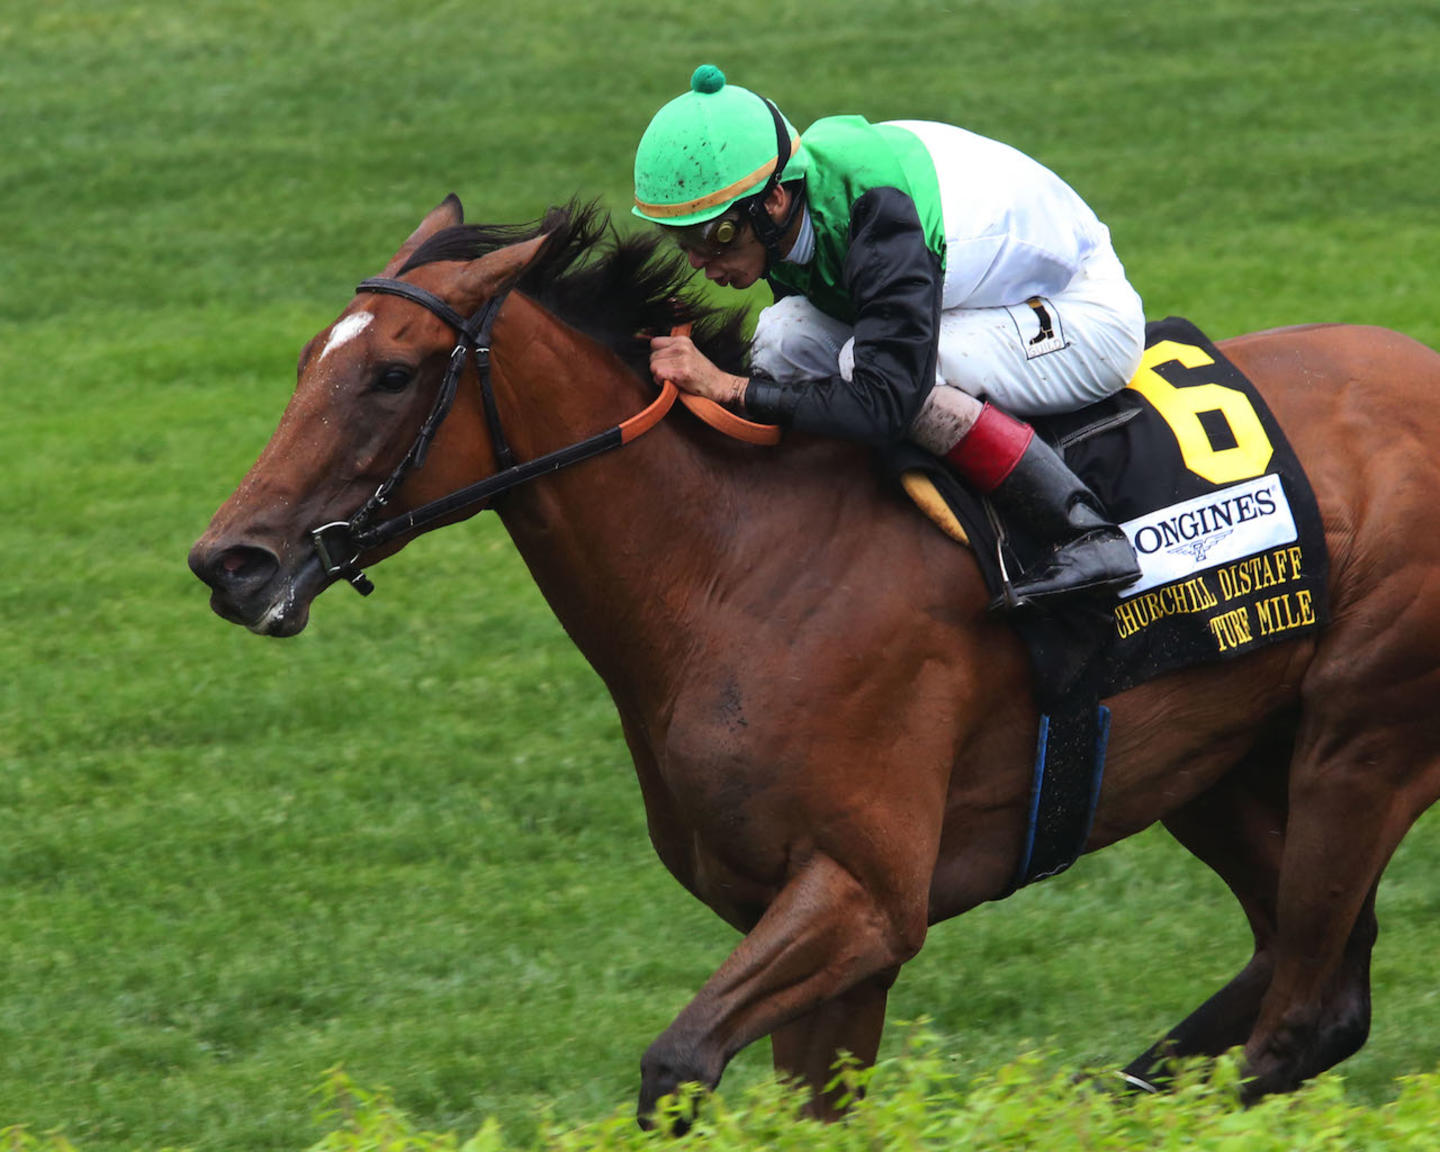 PROCTOR'S LEDGE - The Longines Churchill Distaff Turf Mile G2 - 33rd Running - 05-05-18 - R07 - CD - Inside Aerial Finish 01